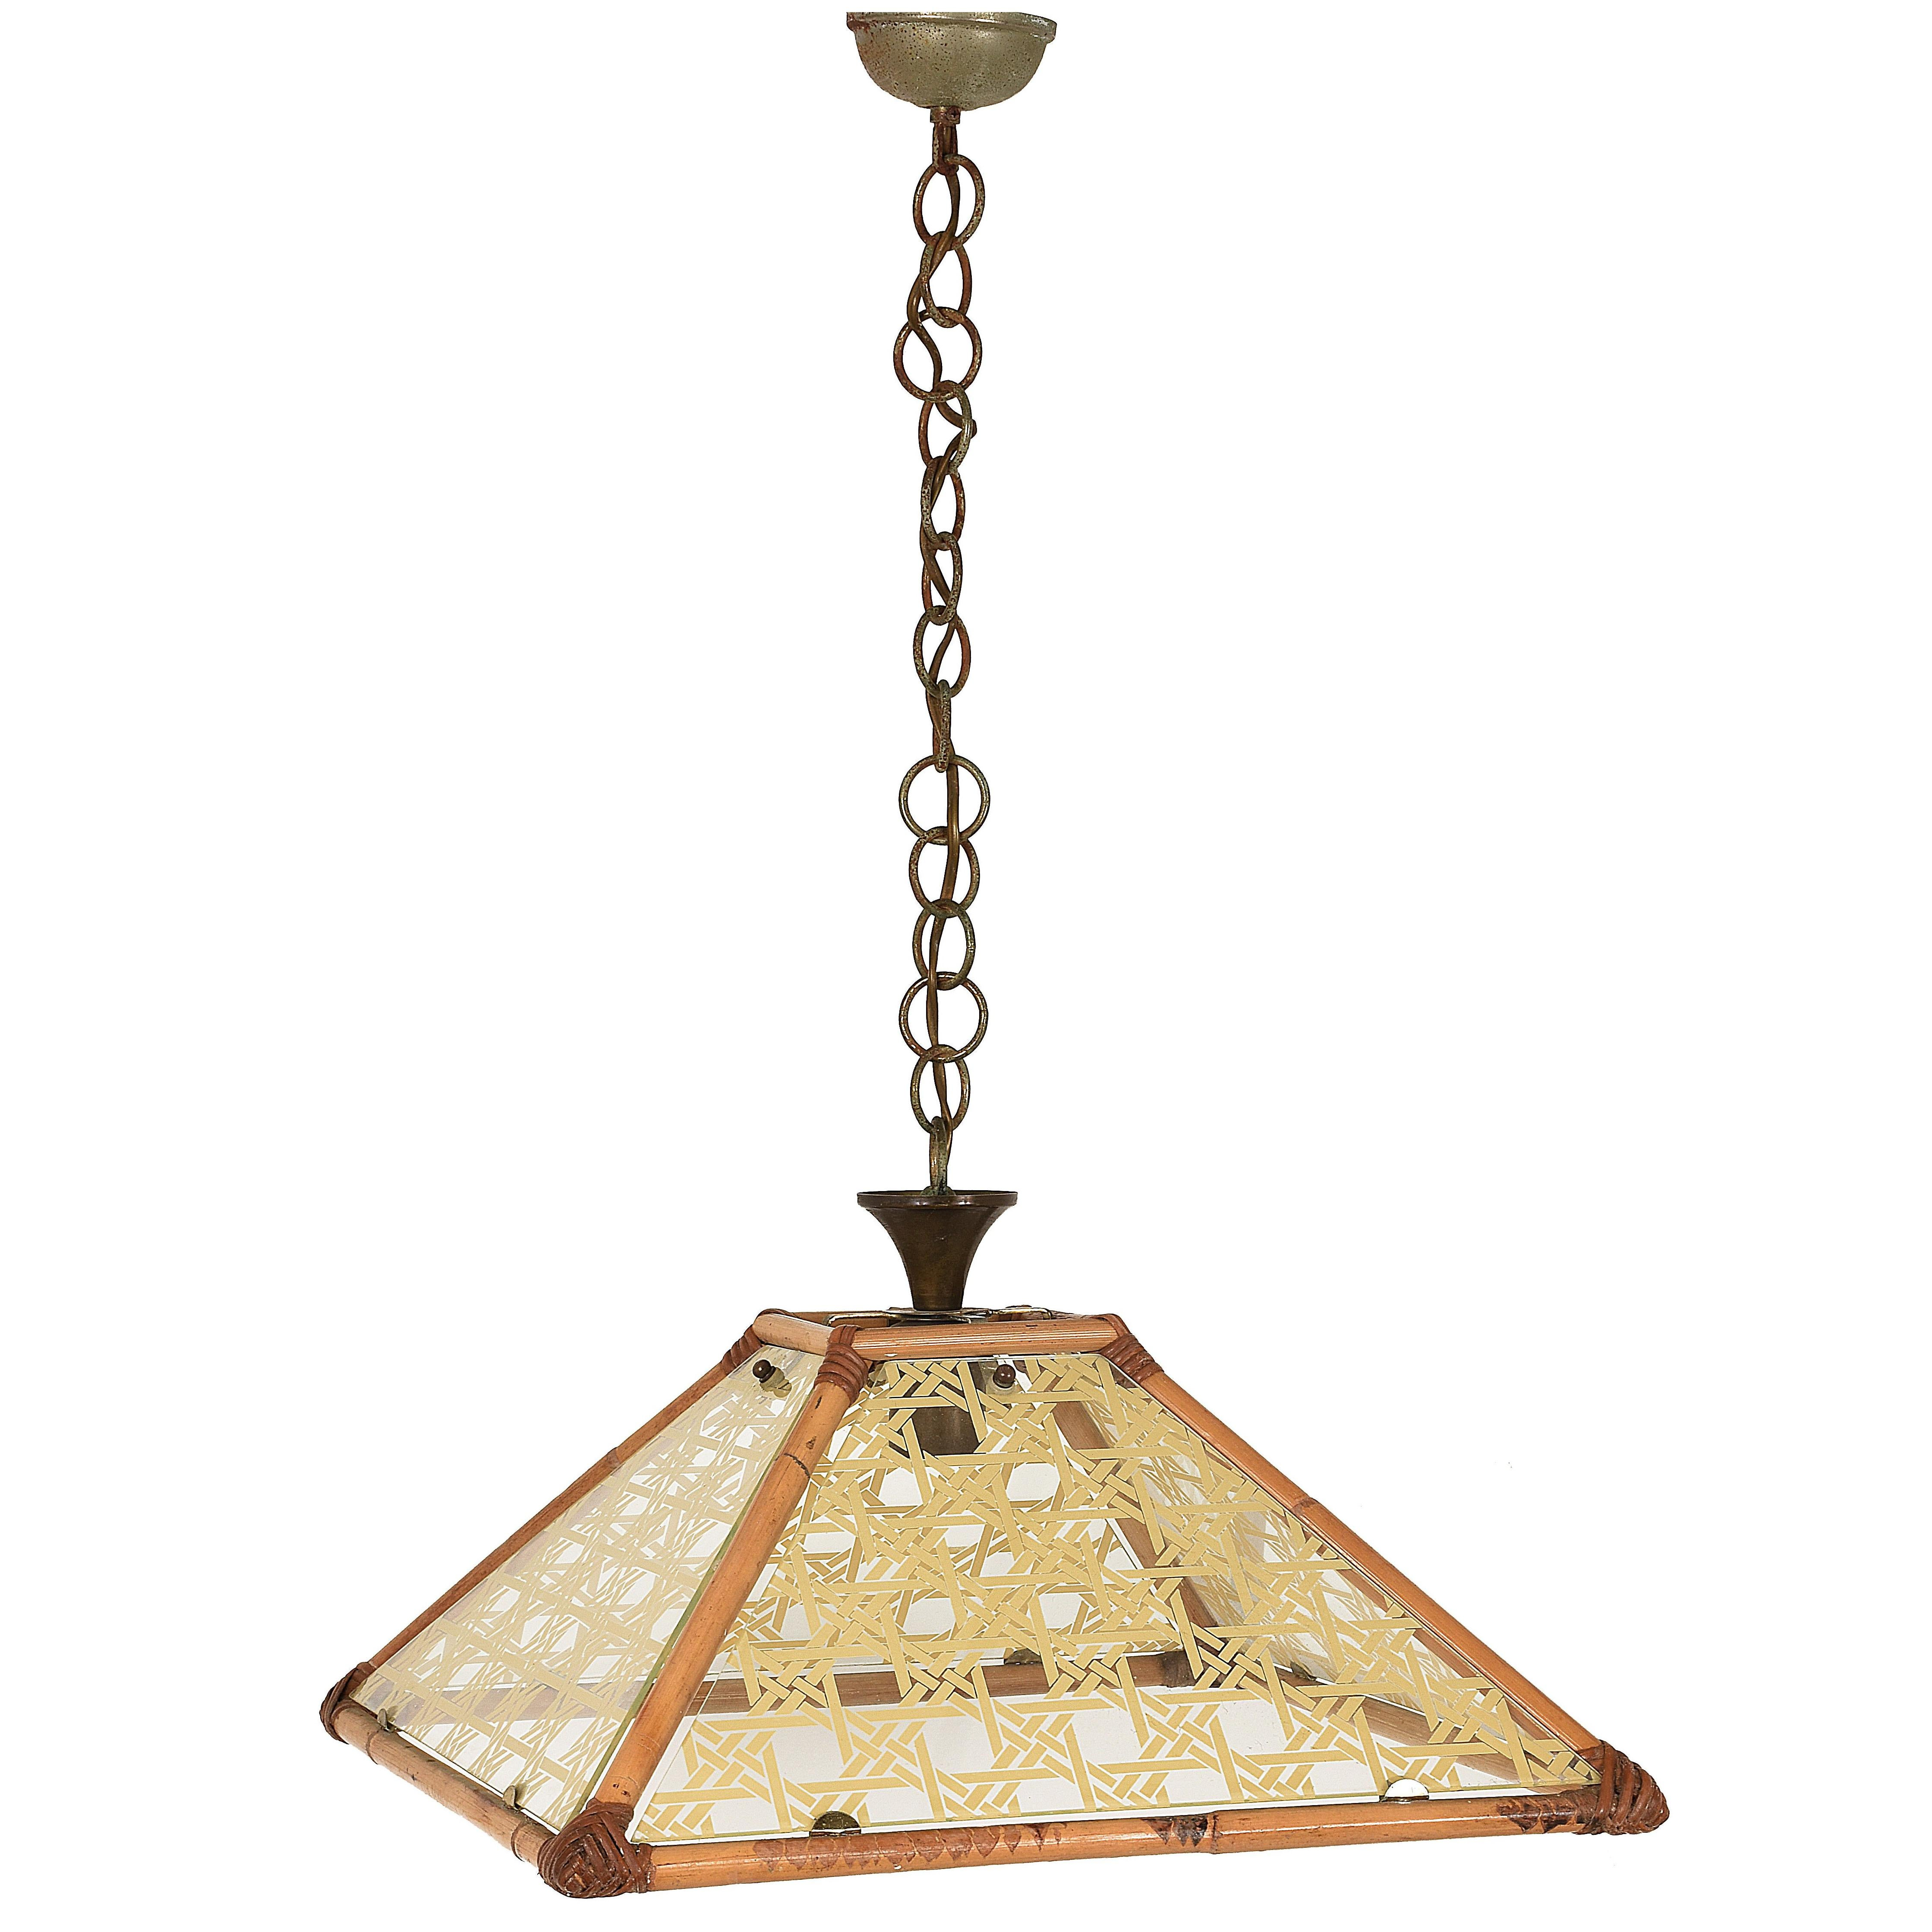 Chandelier in Textured Glass, Rattan, Bamboo and Brass, Pendant Italy, 1970s